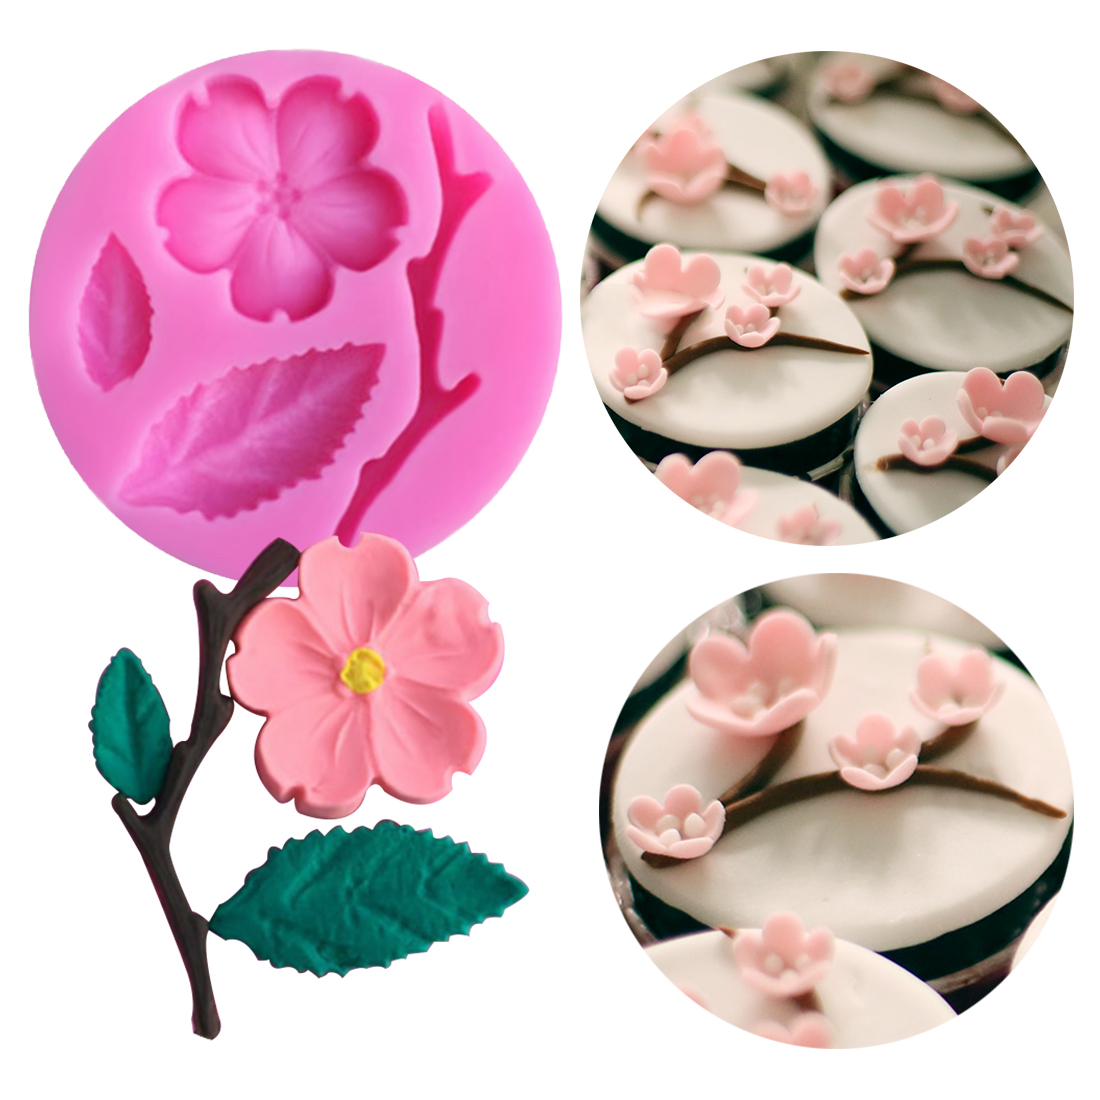 Candy Mould 1PC Peach Blossom Shape <font><b>Fondant</b></font> <font><b>Molds</b></font> <font><b>Cake</b></font> <font><b>Decorating</b></font> <font><b>Tools</b></font> Chocolate <font><b>Mold</b></font> Soap <font><b>Cake</b></font> Stencils Kitchen DIY <font><b>Tools</b></font> image